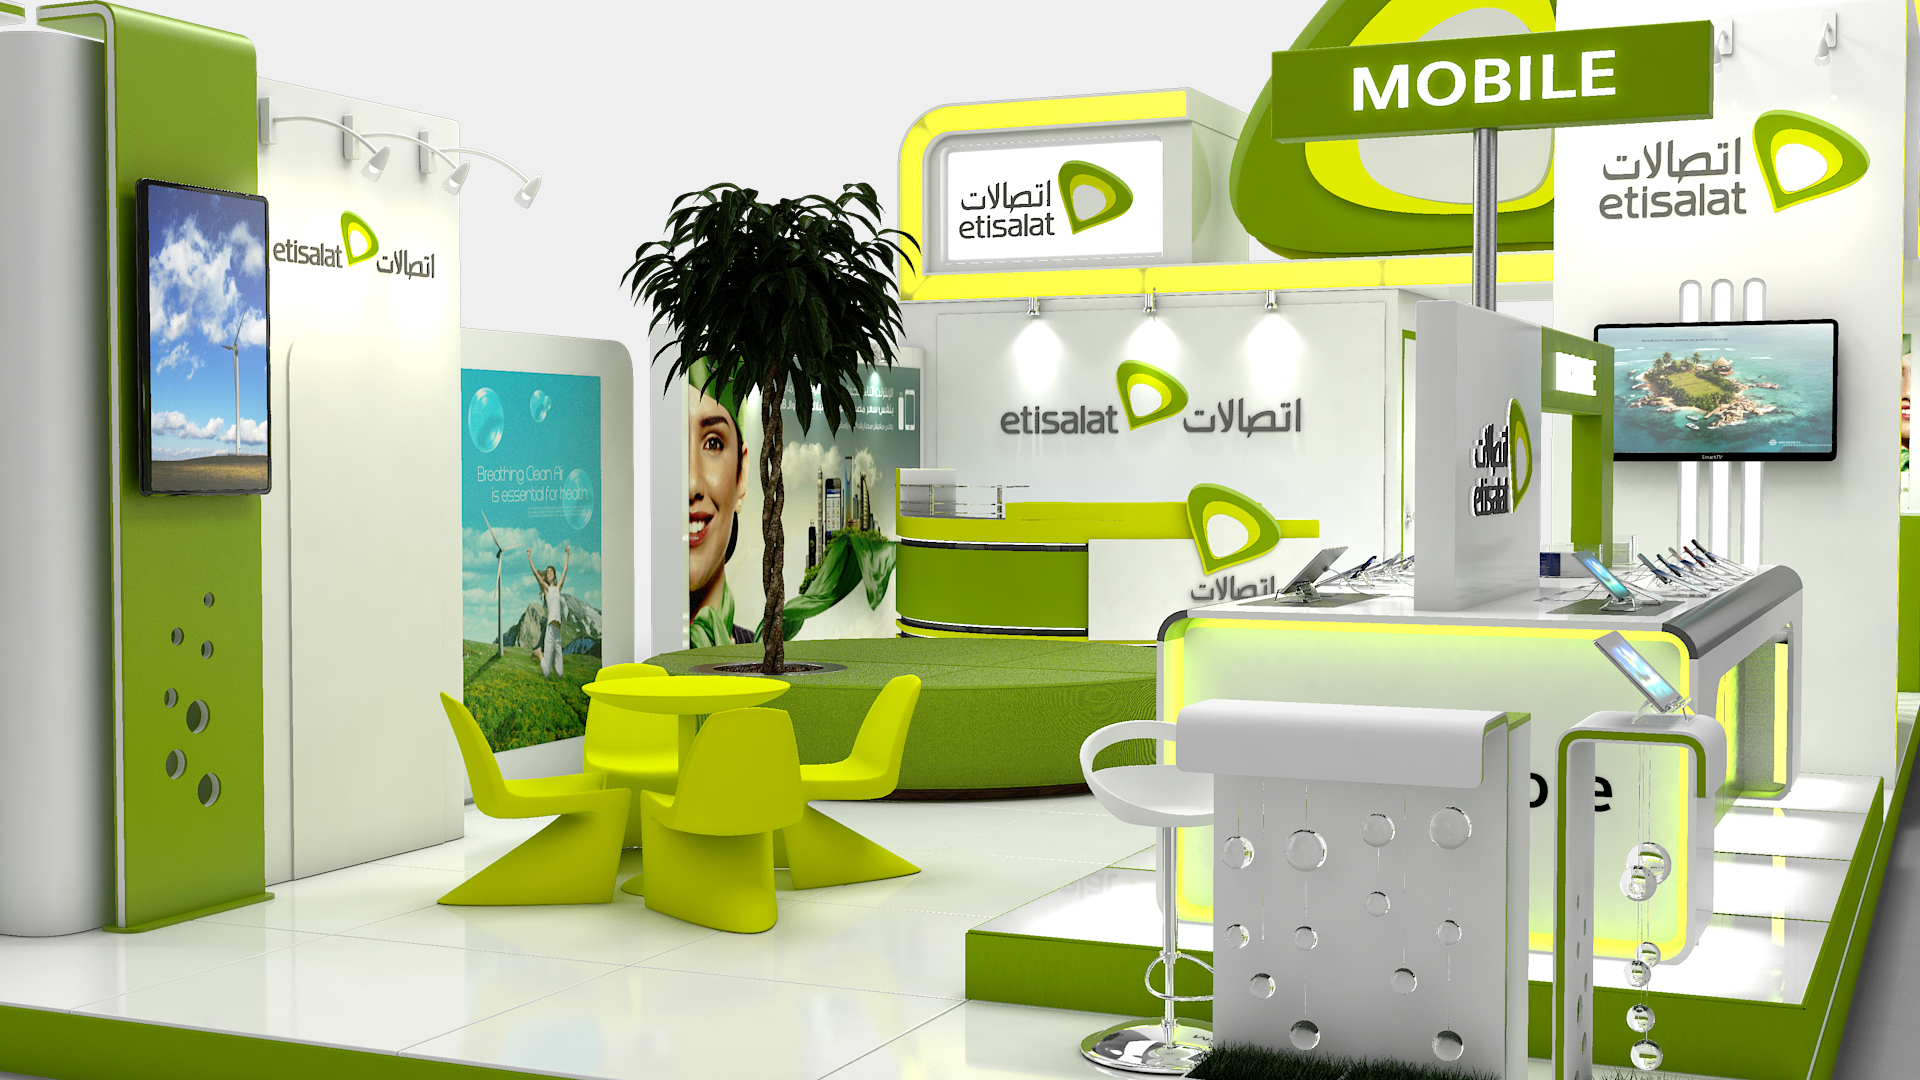 Etisalat Exhibition Stand Design on Behance